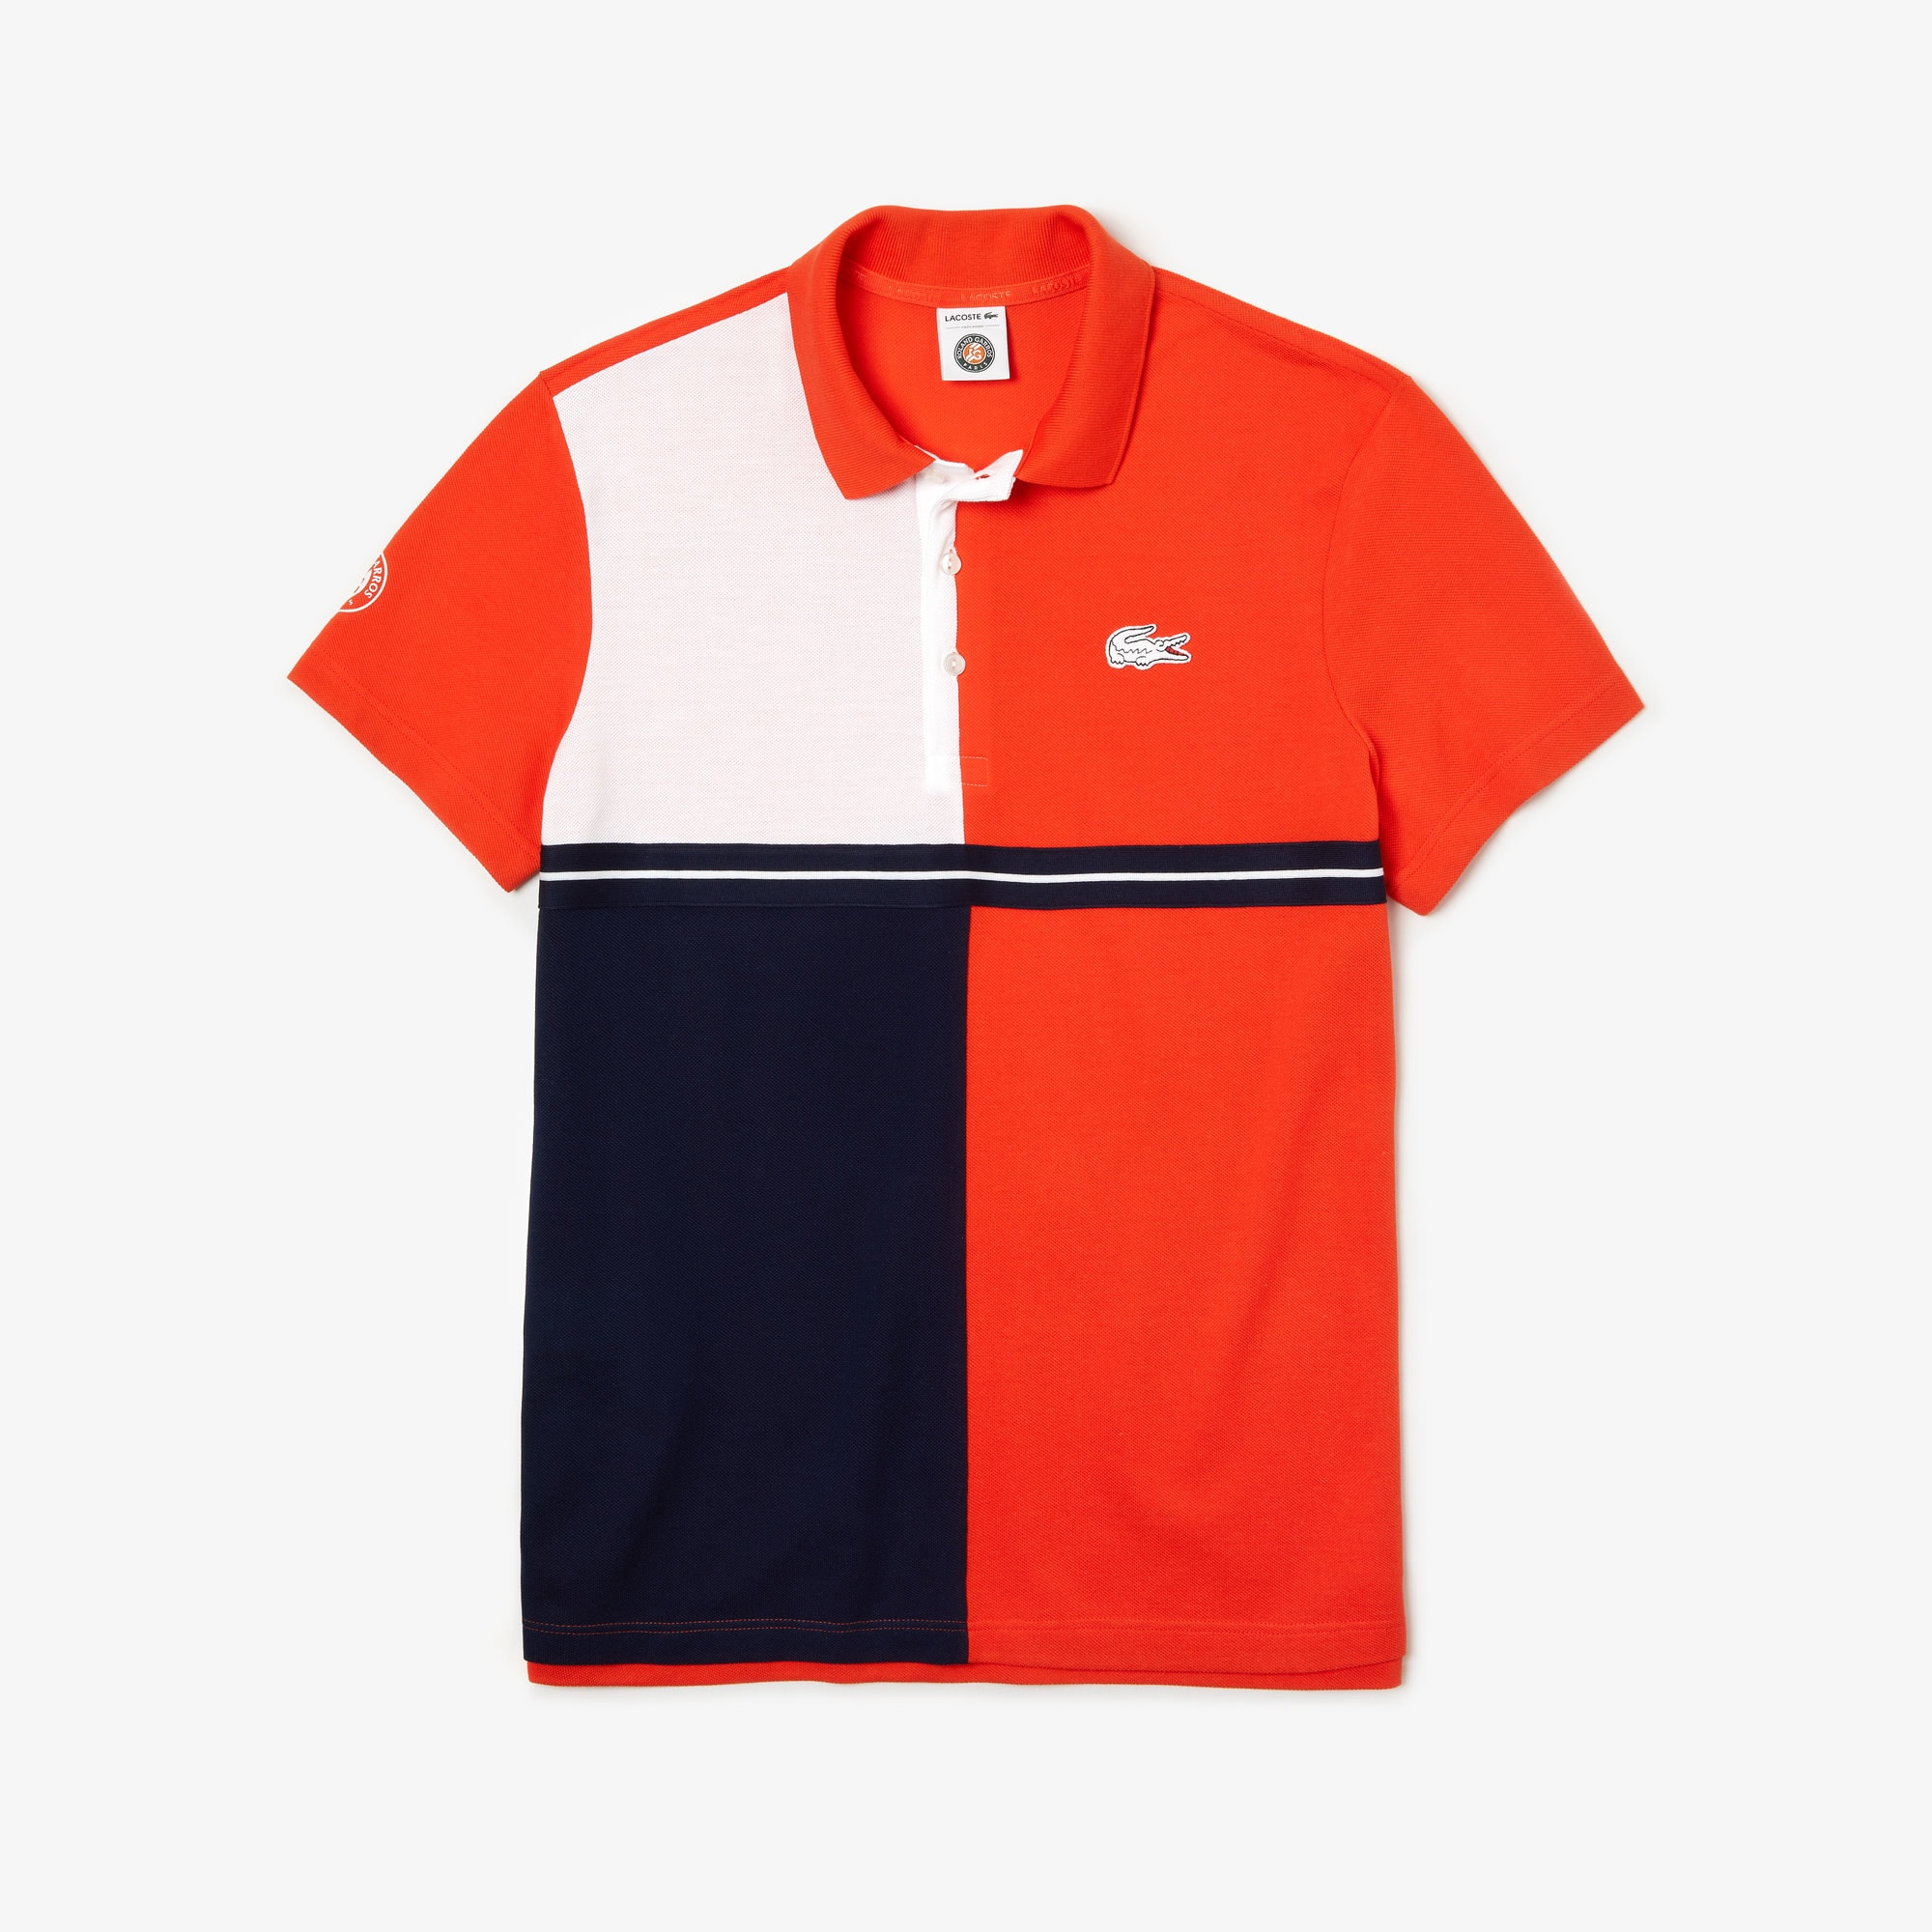 1e59f2297 Men s Lacoste SPORT French Open Colourblock Petit Piqué Polo Shirt ...